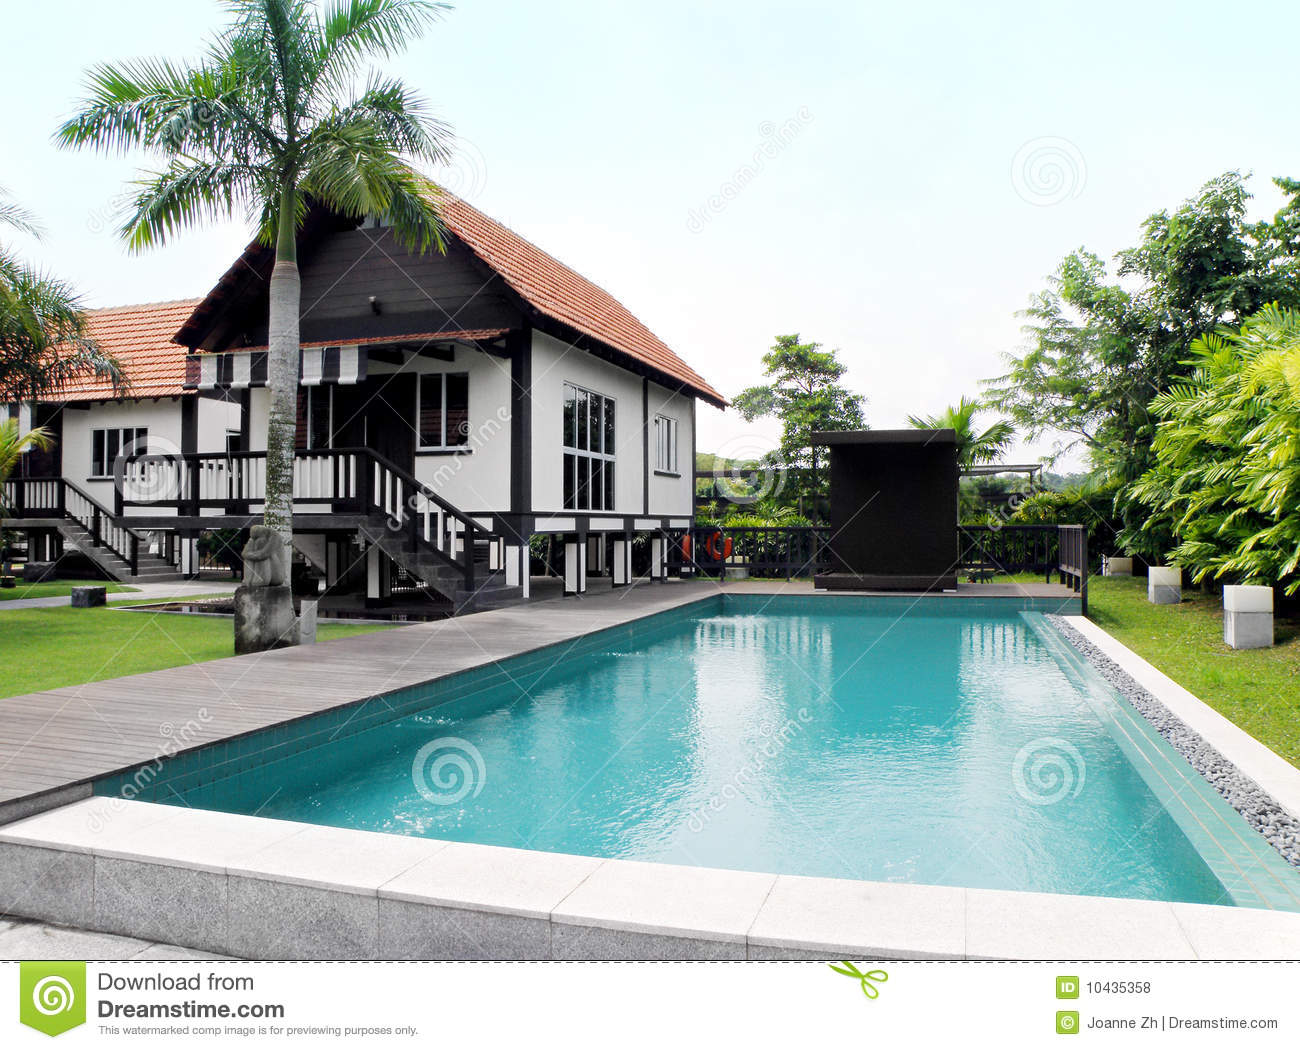 Tropical Style House With Pool And Landscaping Royalty ...